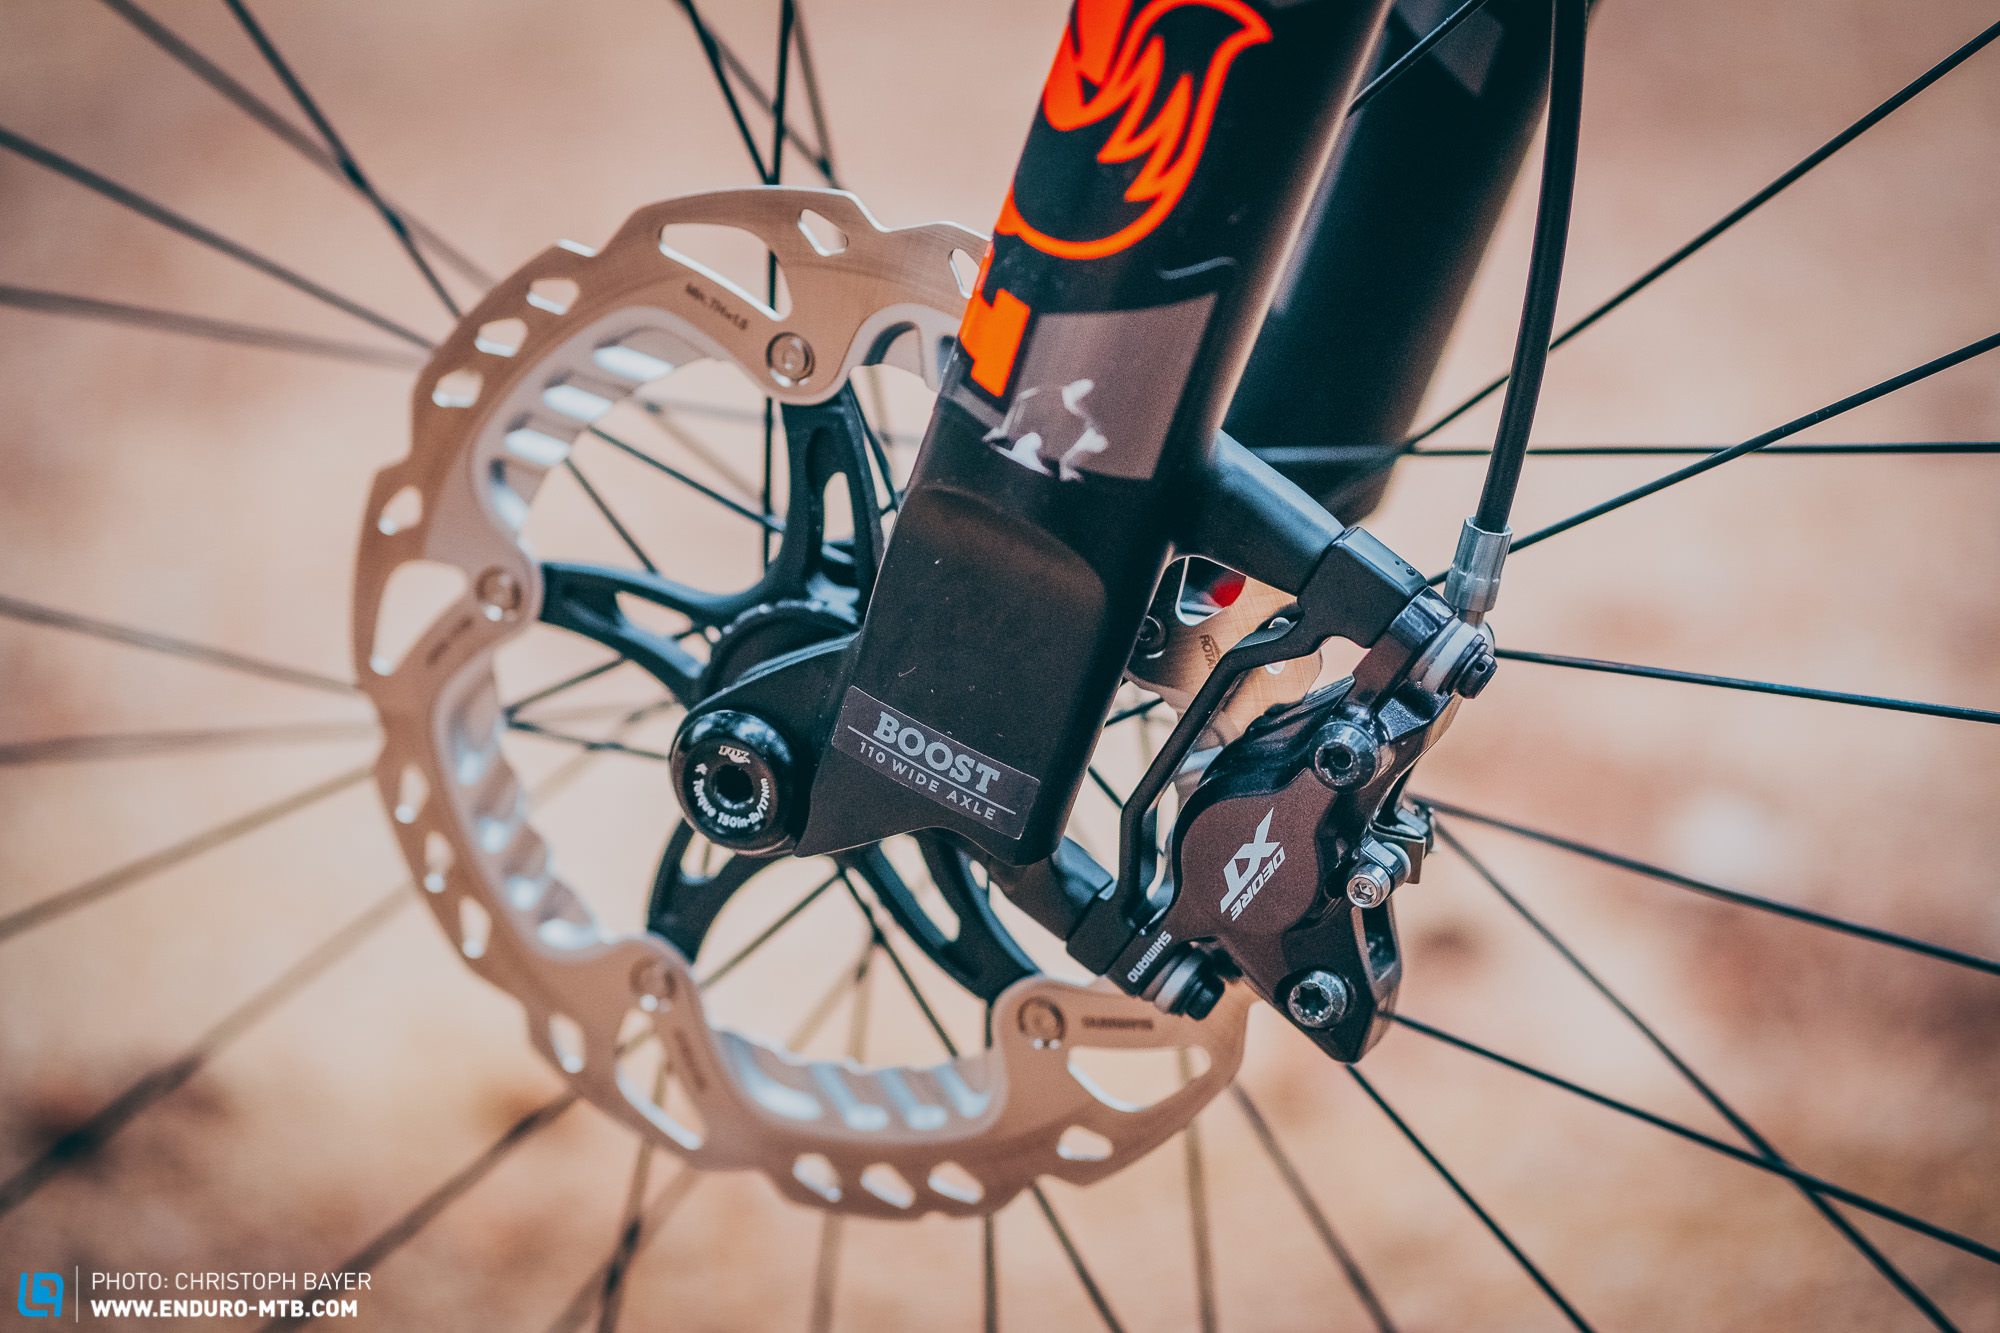 First test: Shimano XT M8100 and SLX M7100 disc brakes – lots of